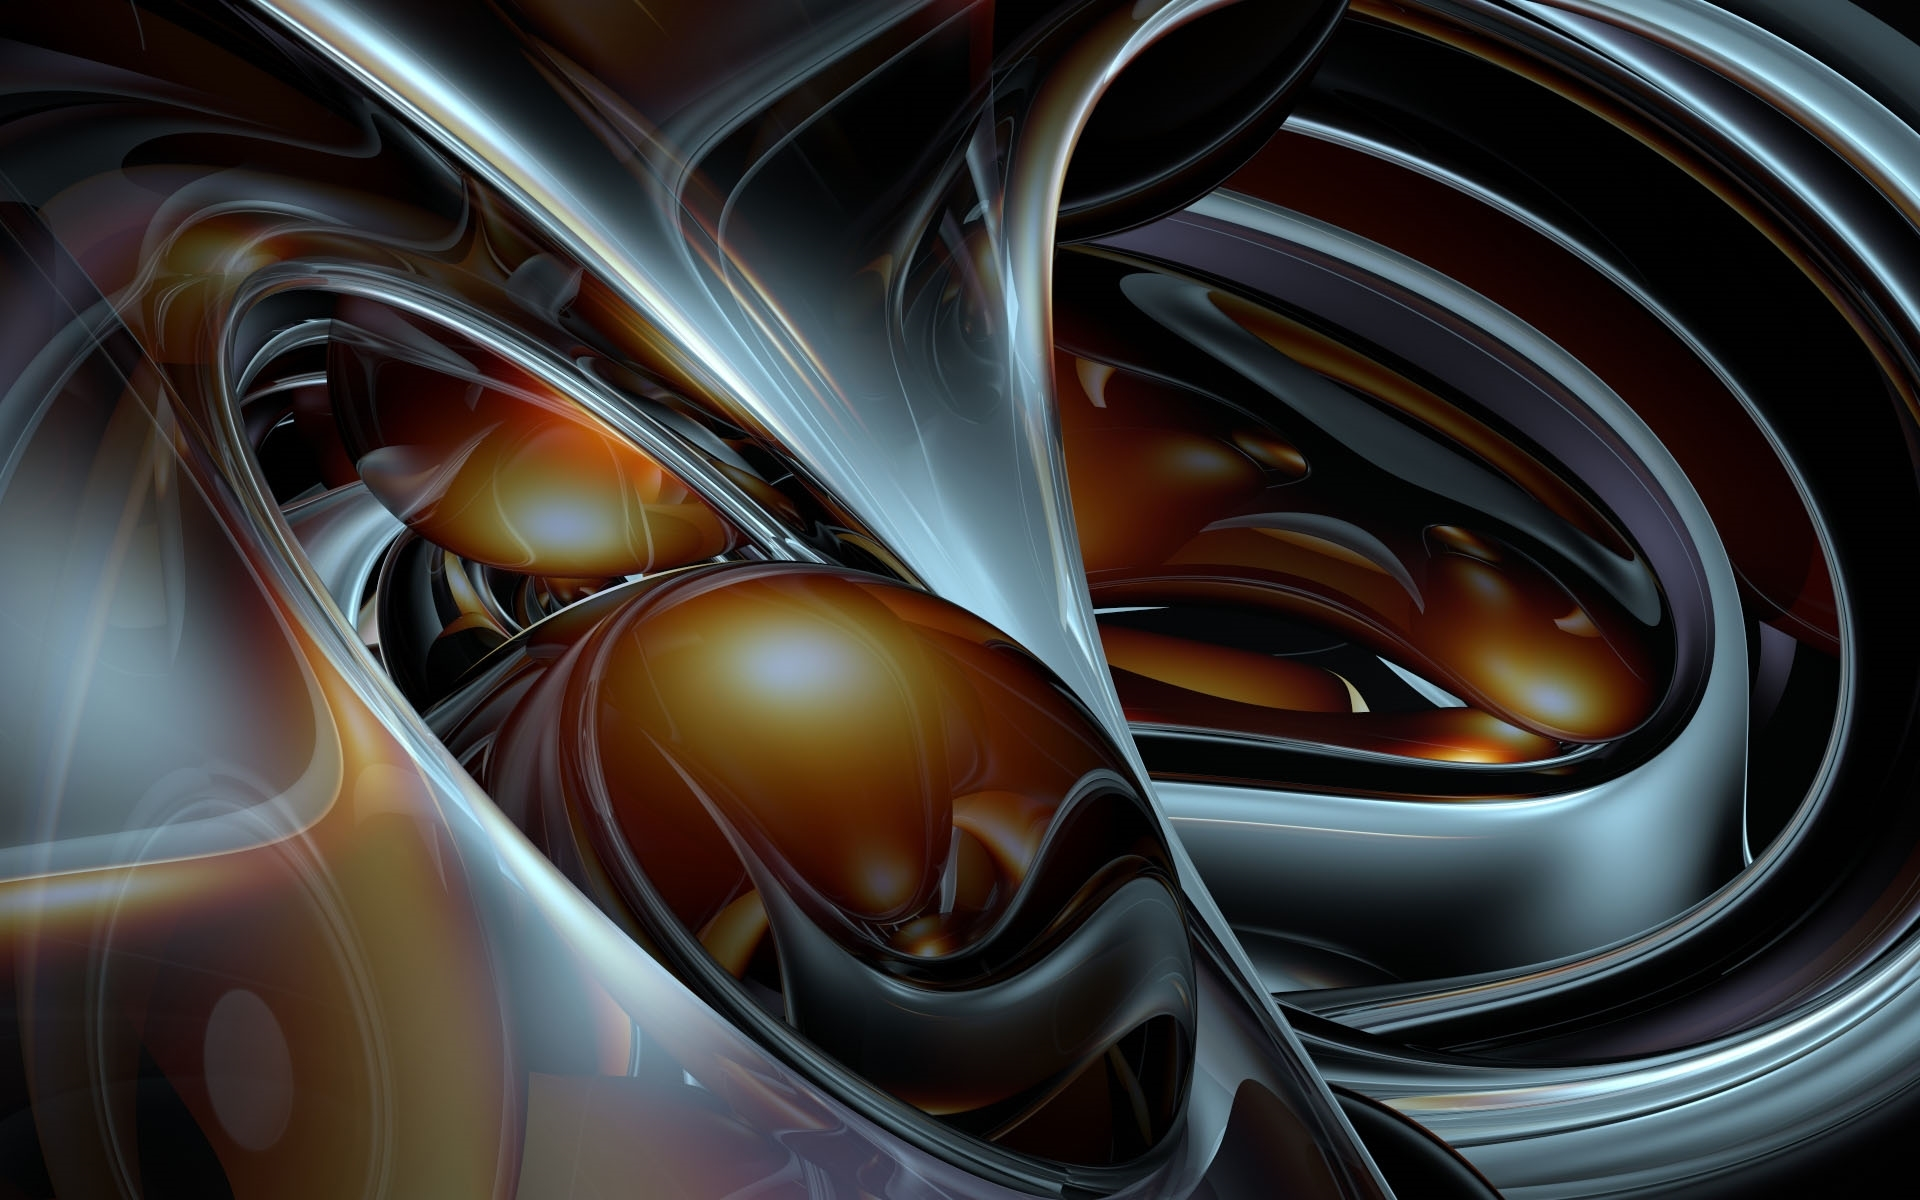 3d abstract high quality wallpapers - High quality 3d wallpapers for pc ...